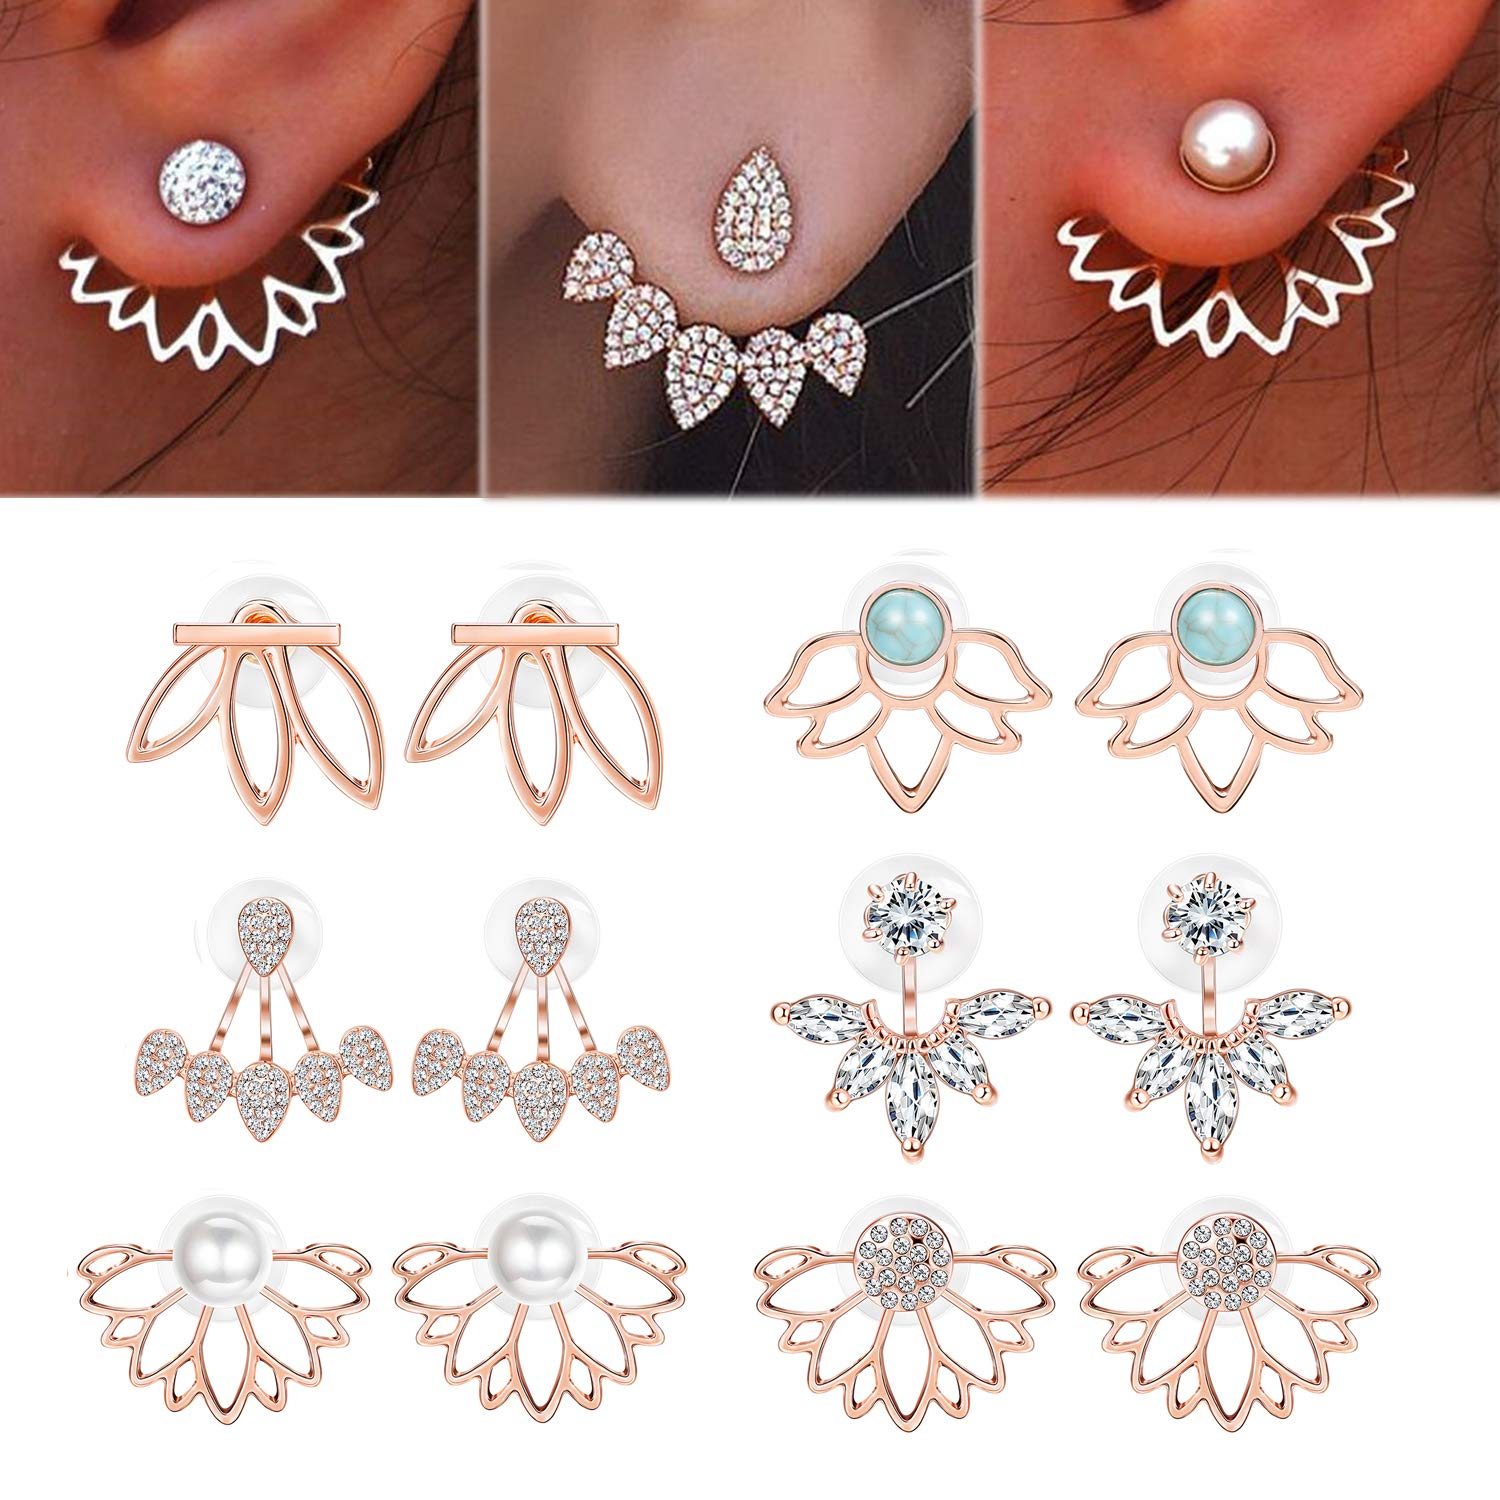 Adramata 6 Pairs Lotus Flower Earrings for Women Girls Simple Chic Fashion Stud Earrings B07G9ZN1YF_US